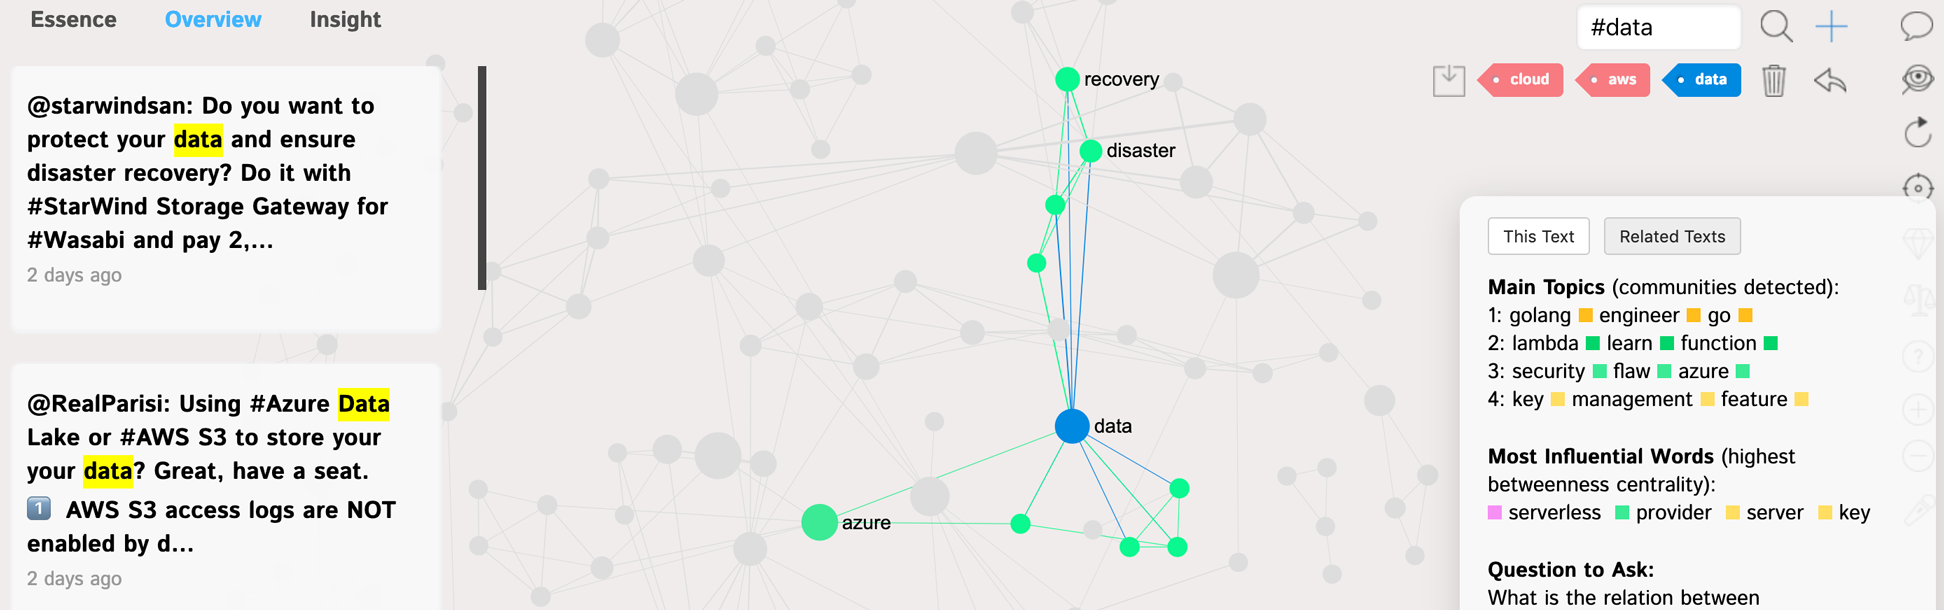 Contextual analysis for the Network Graph